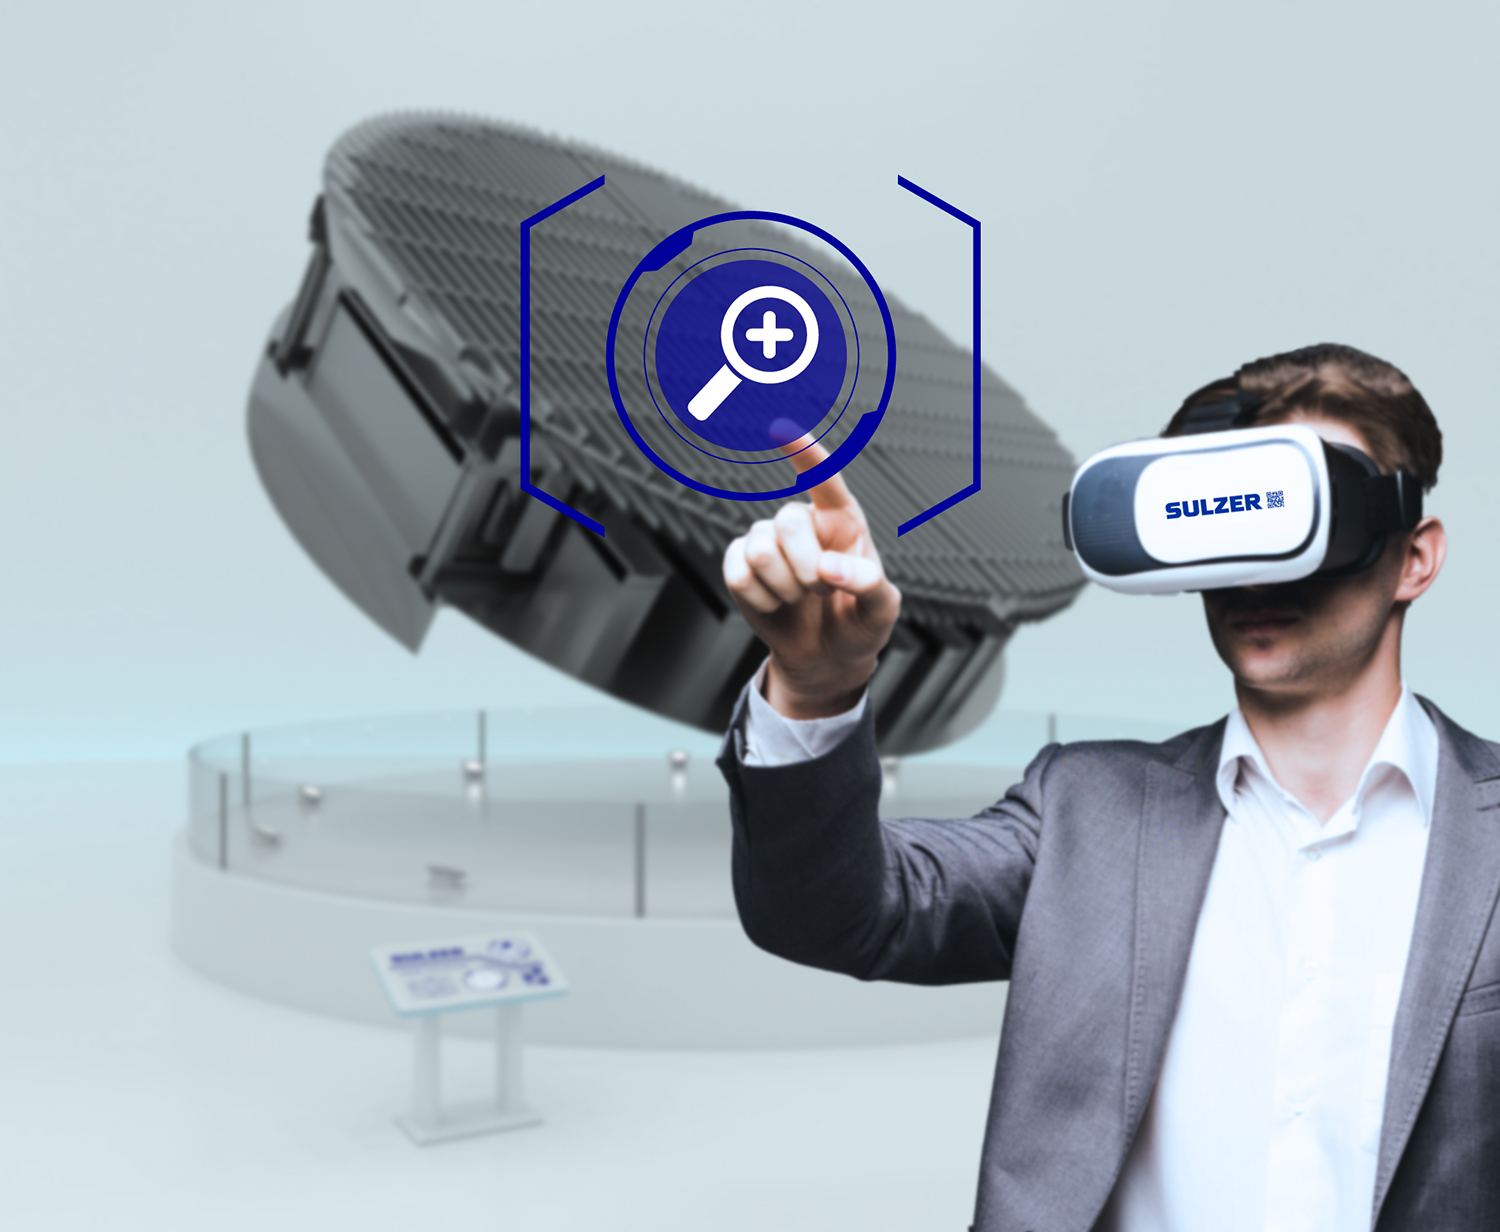 Sulzer introduces AR/VR at ACHEMA 2018